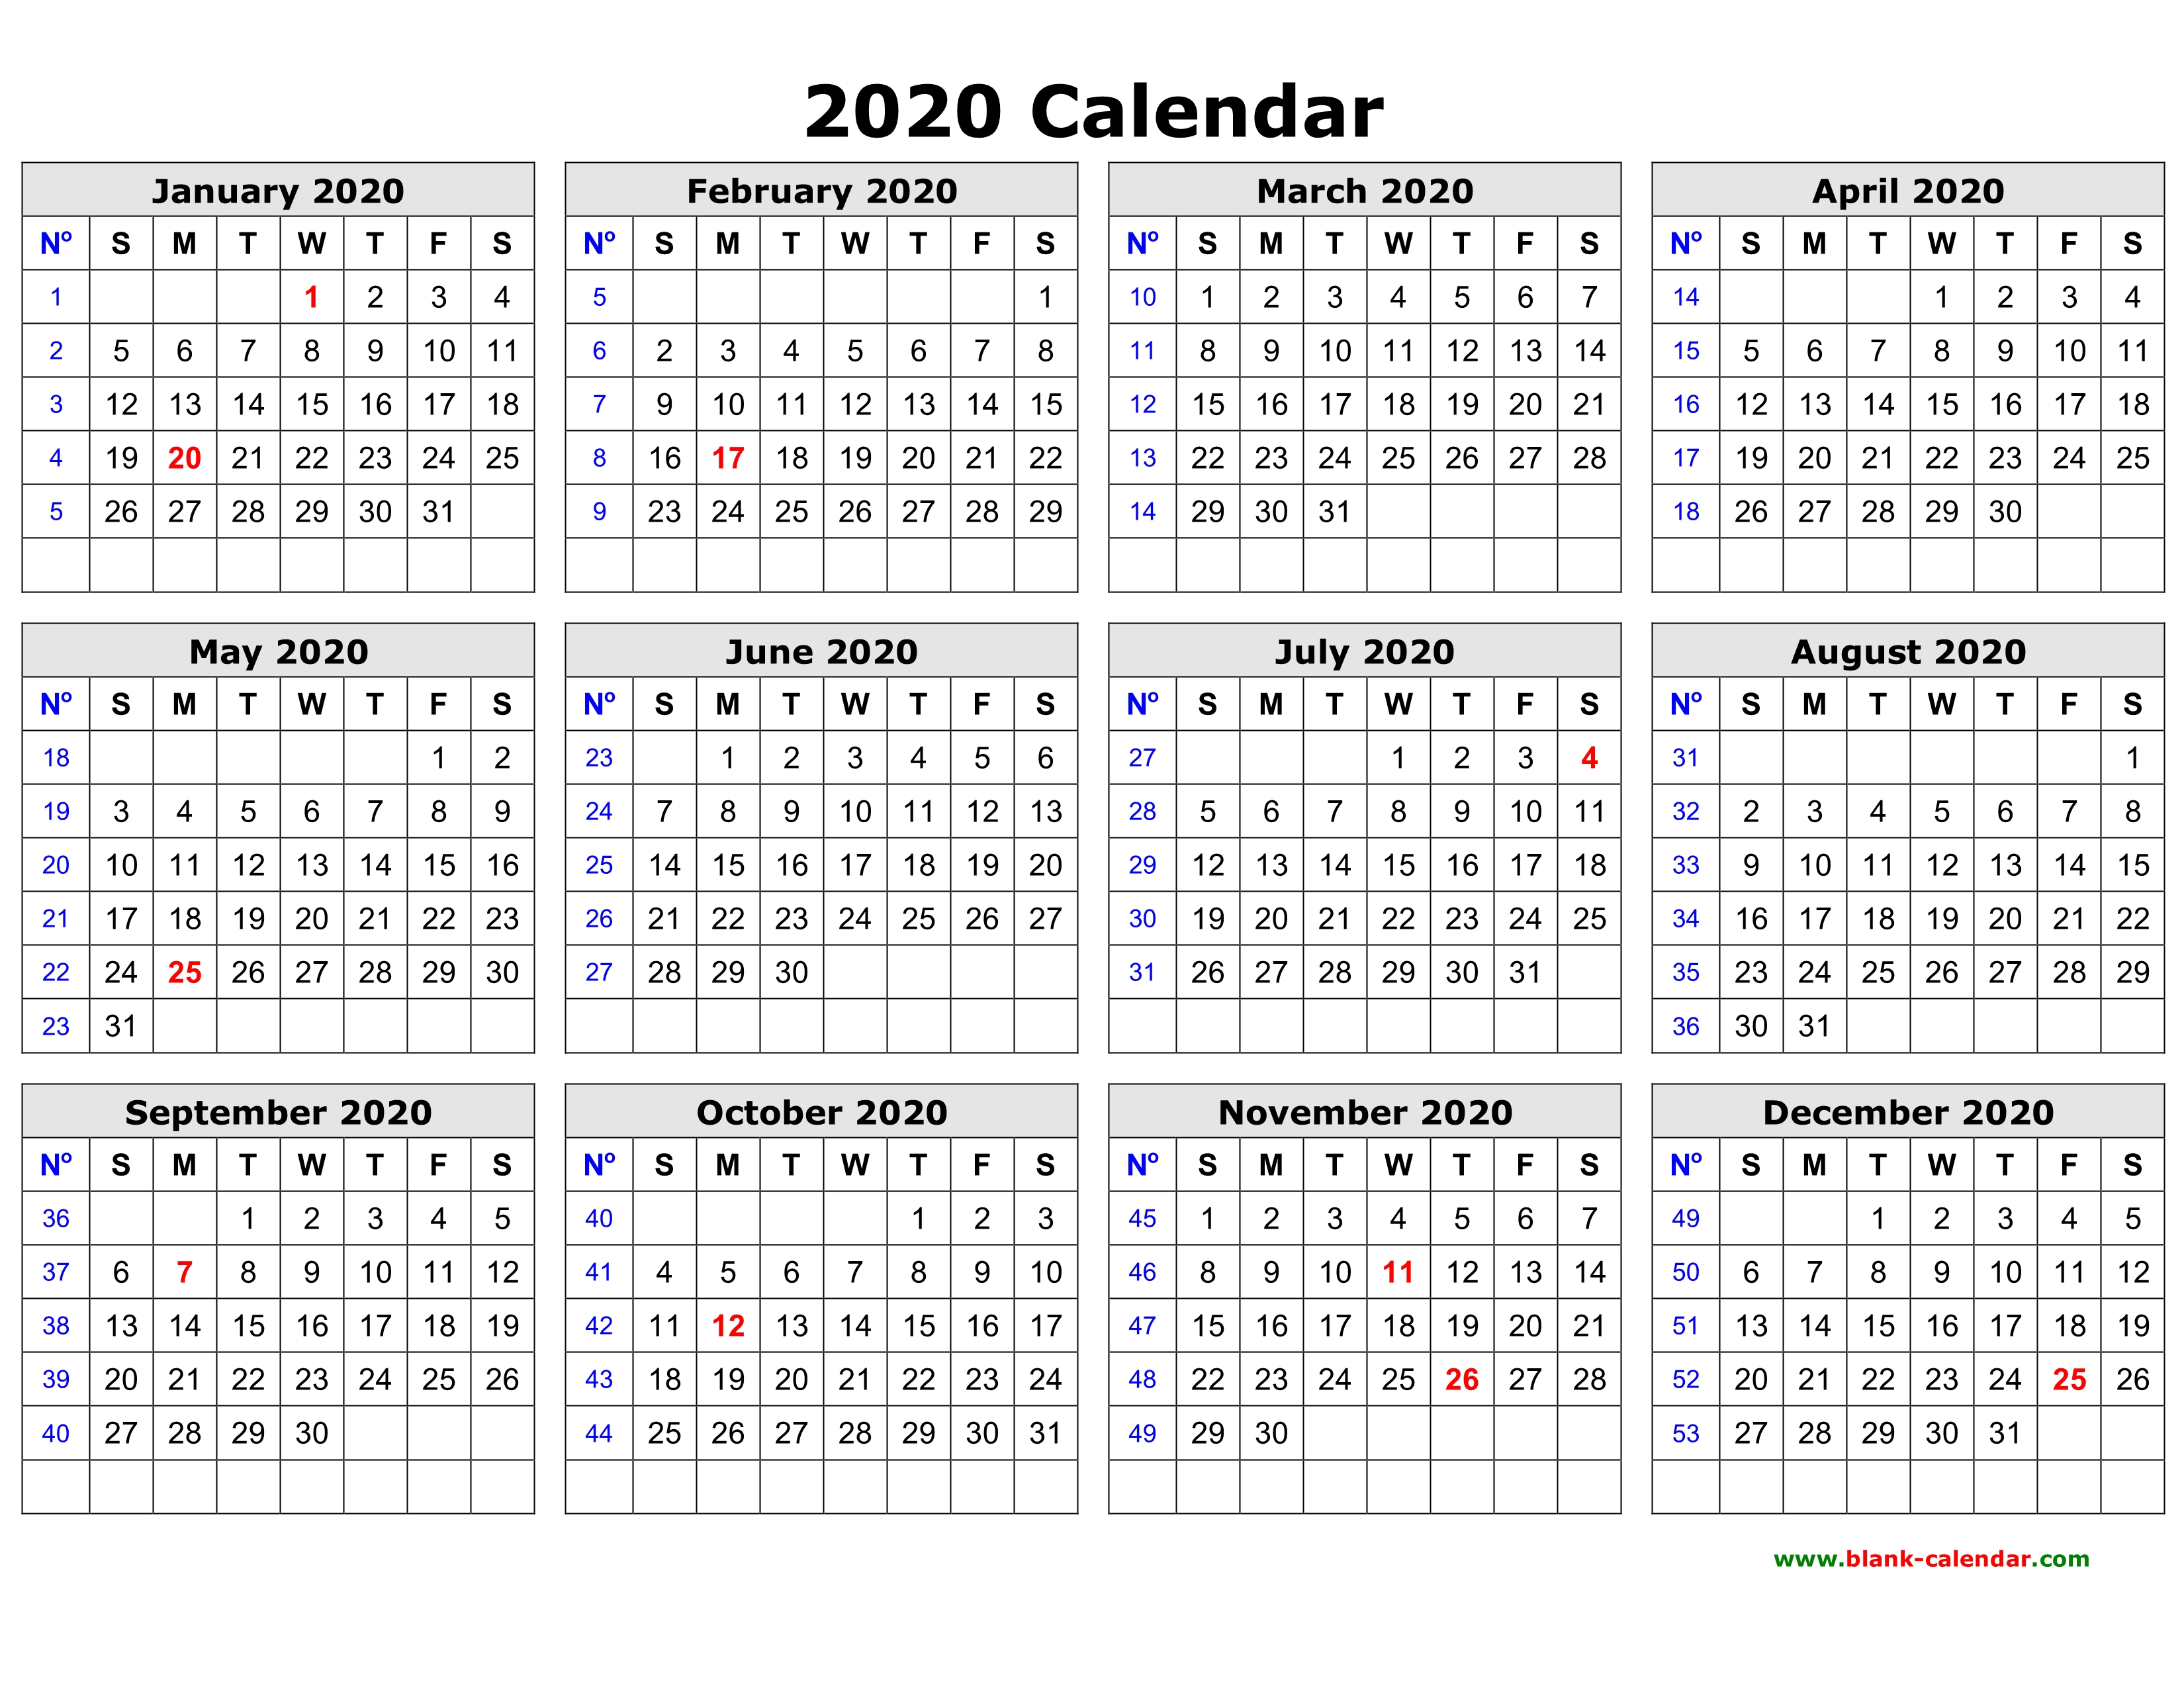 Printable Year Calendar 2020 Free Download Printable Calendar 2020 in one page, clean design.